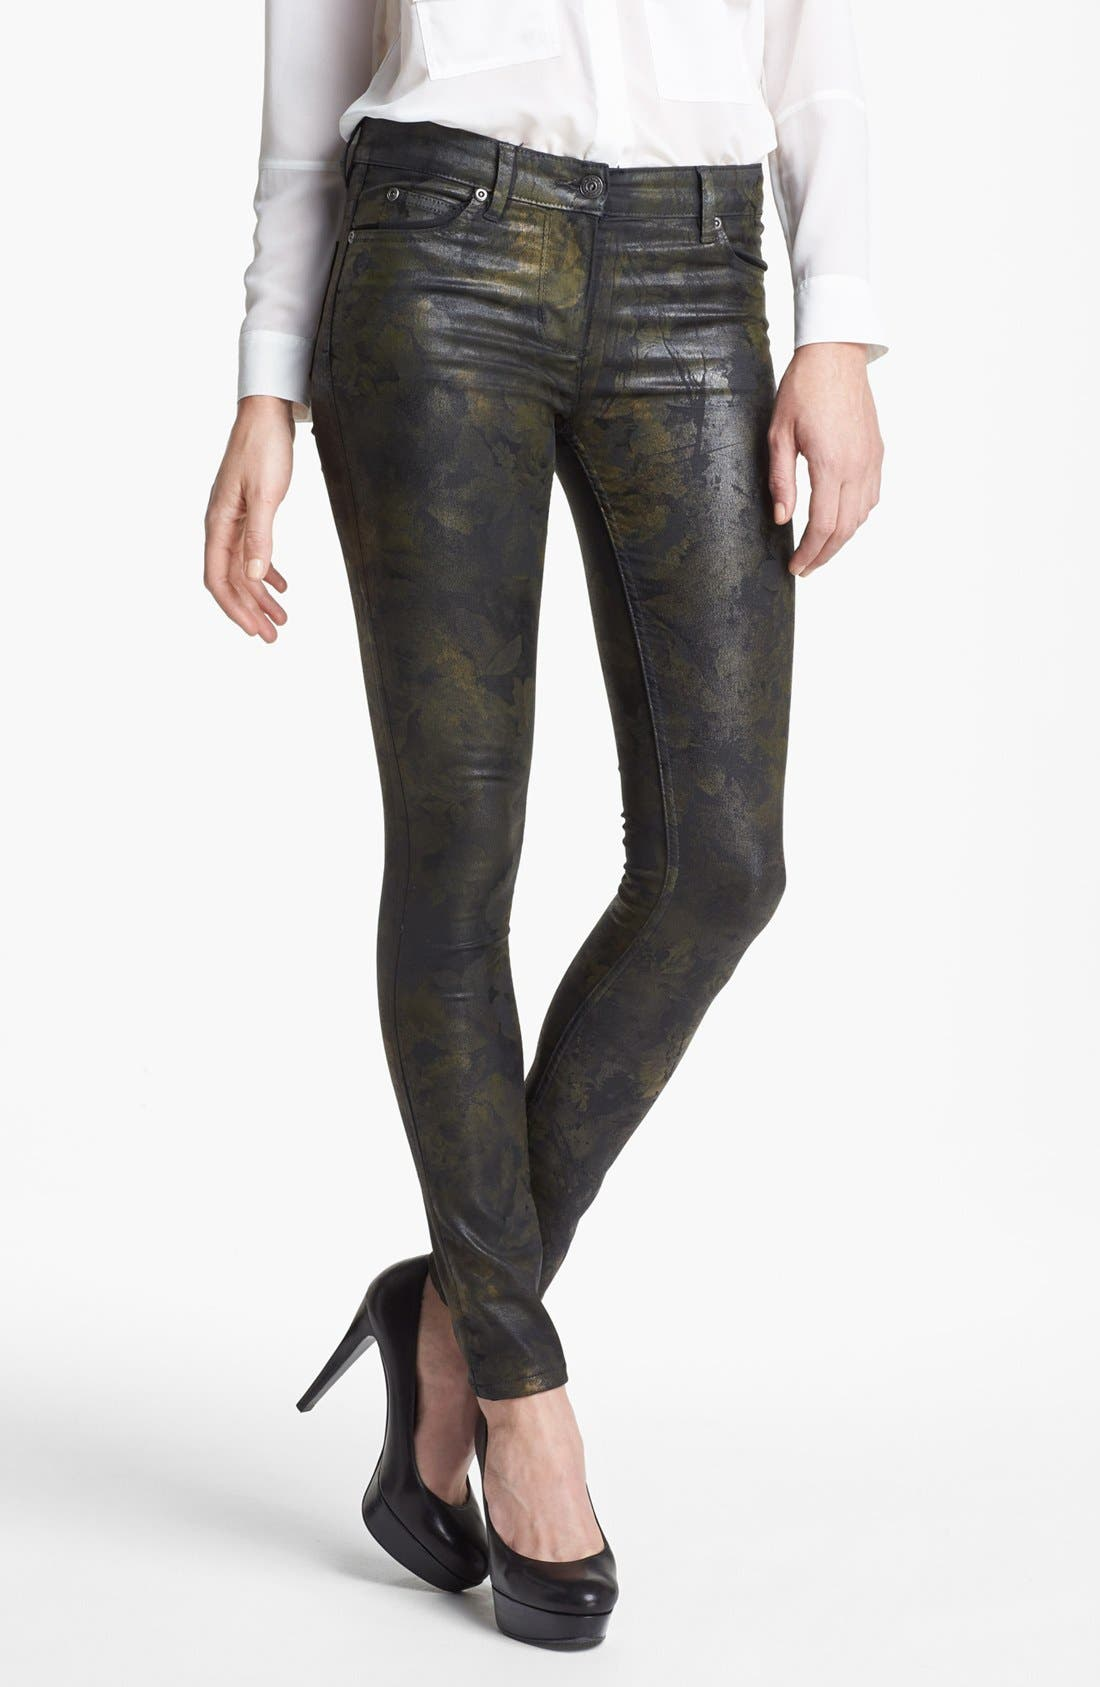 Alternate Image 1 Selected - Two by Vince Camuto Coated Print Skinny Jeans